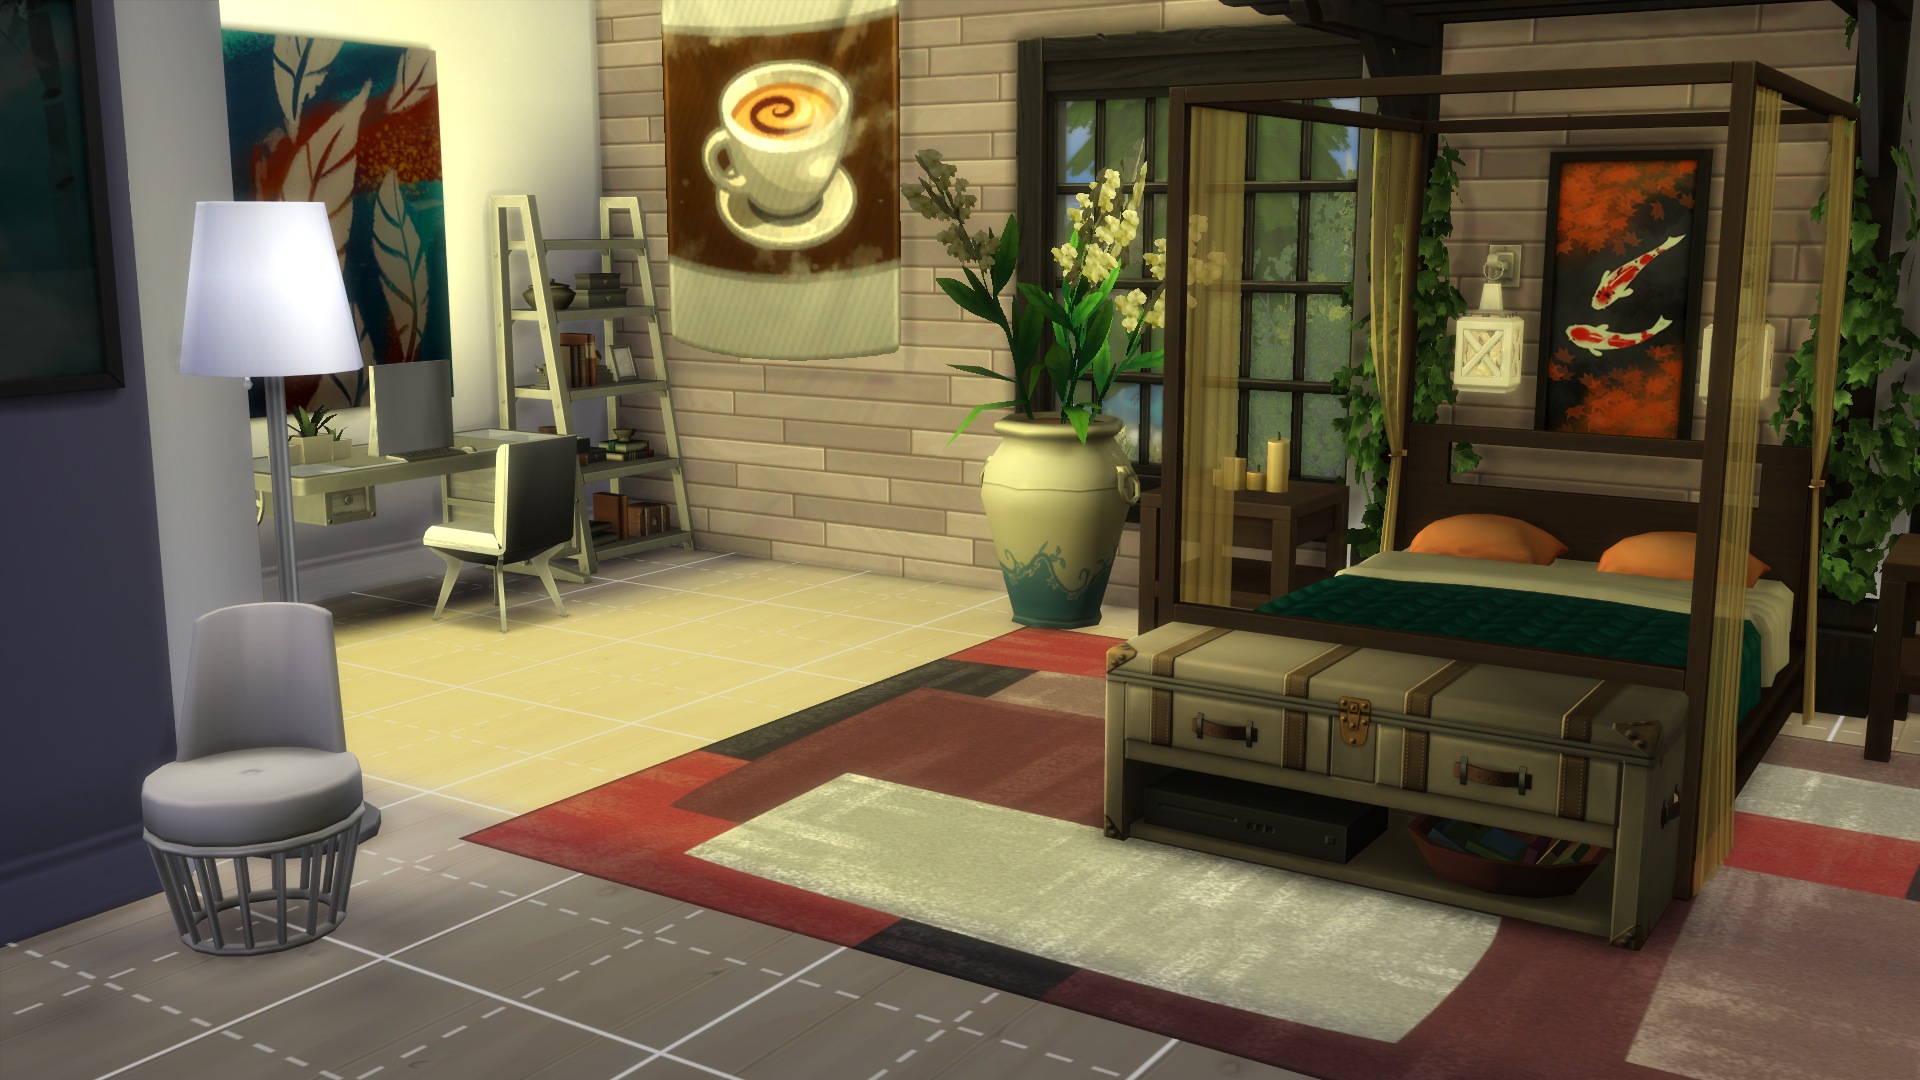 The sims 4 downloadable home made by Aylin Crow #thesims4 ...